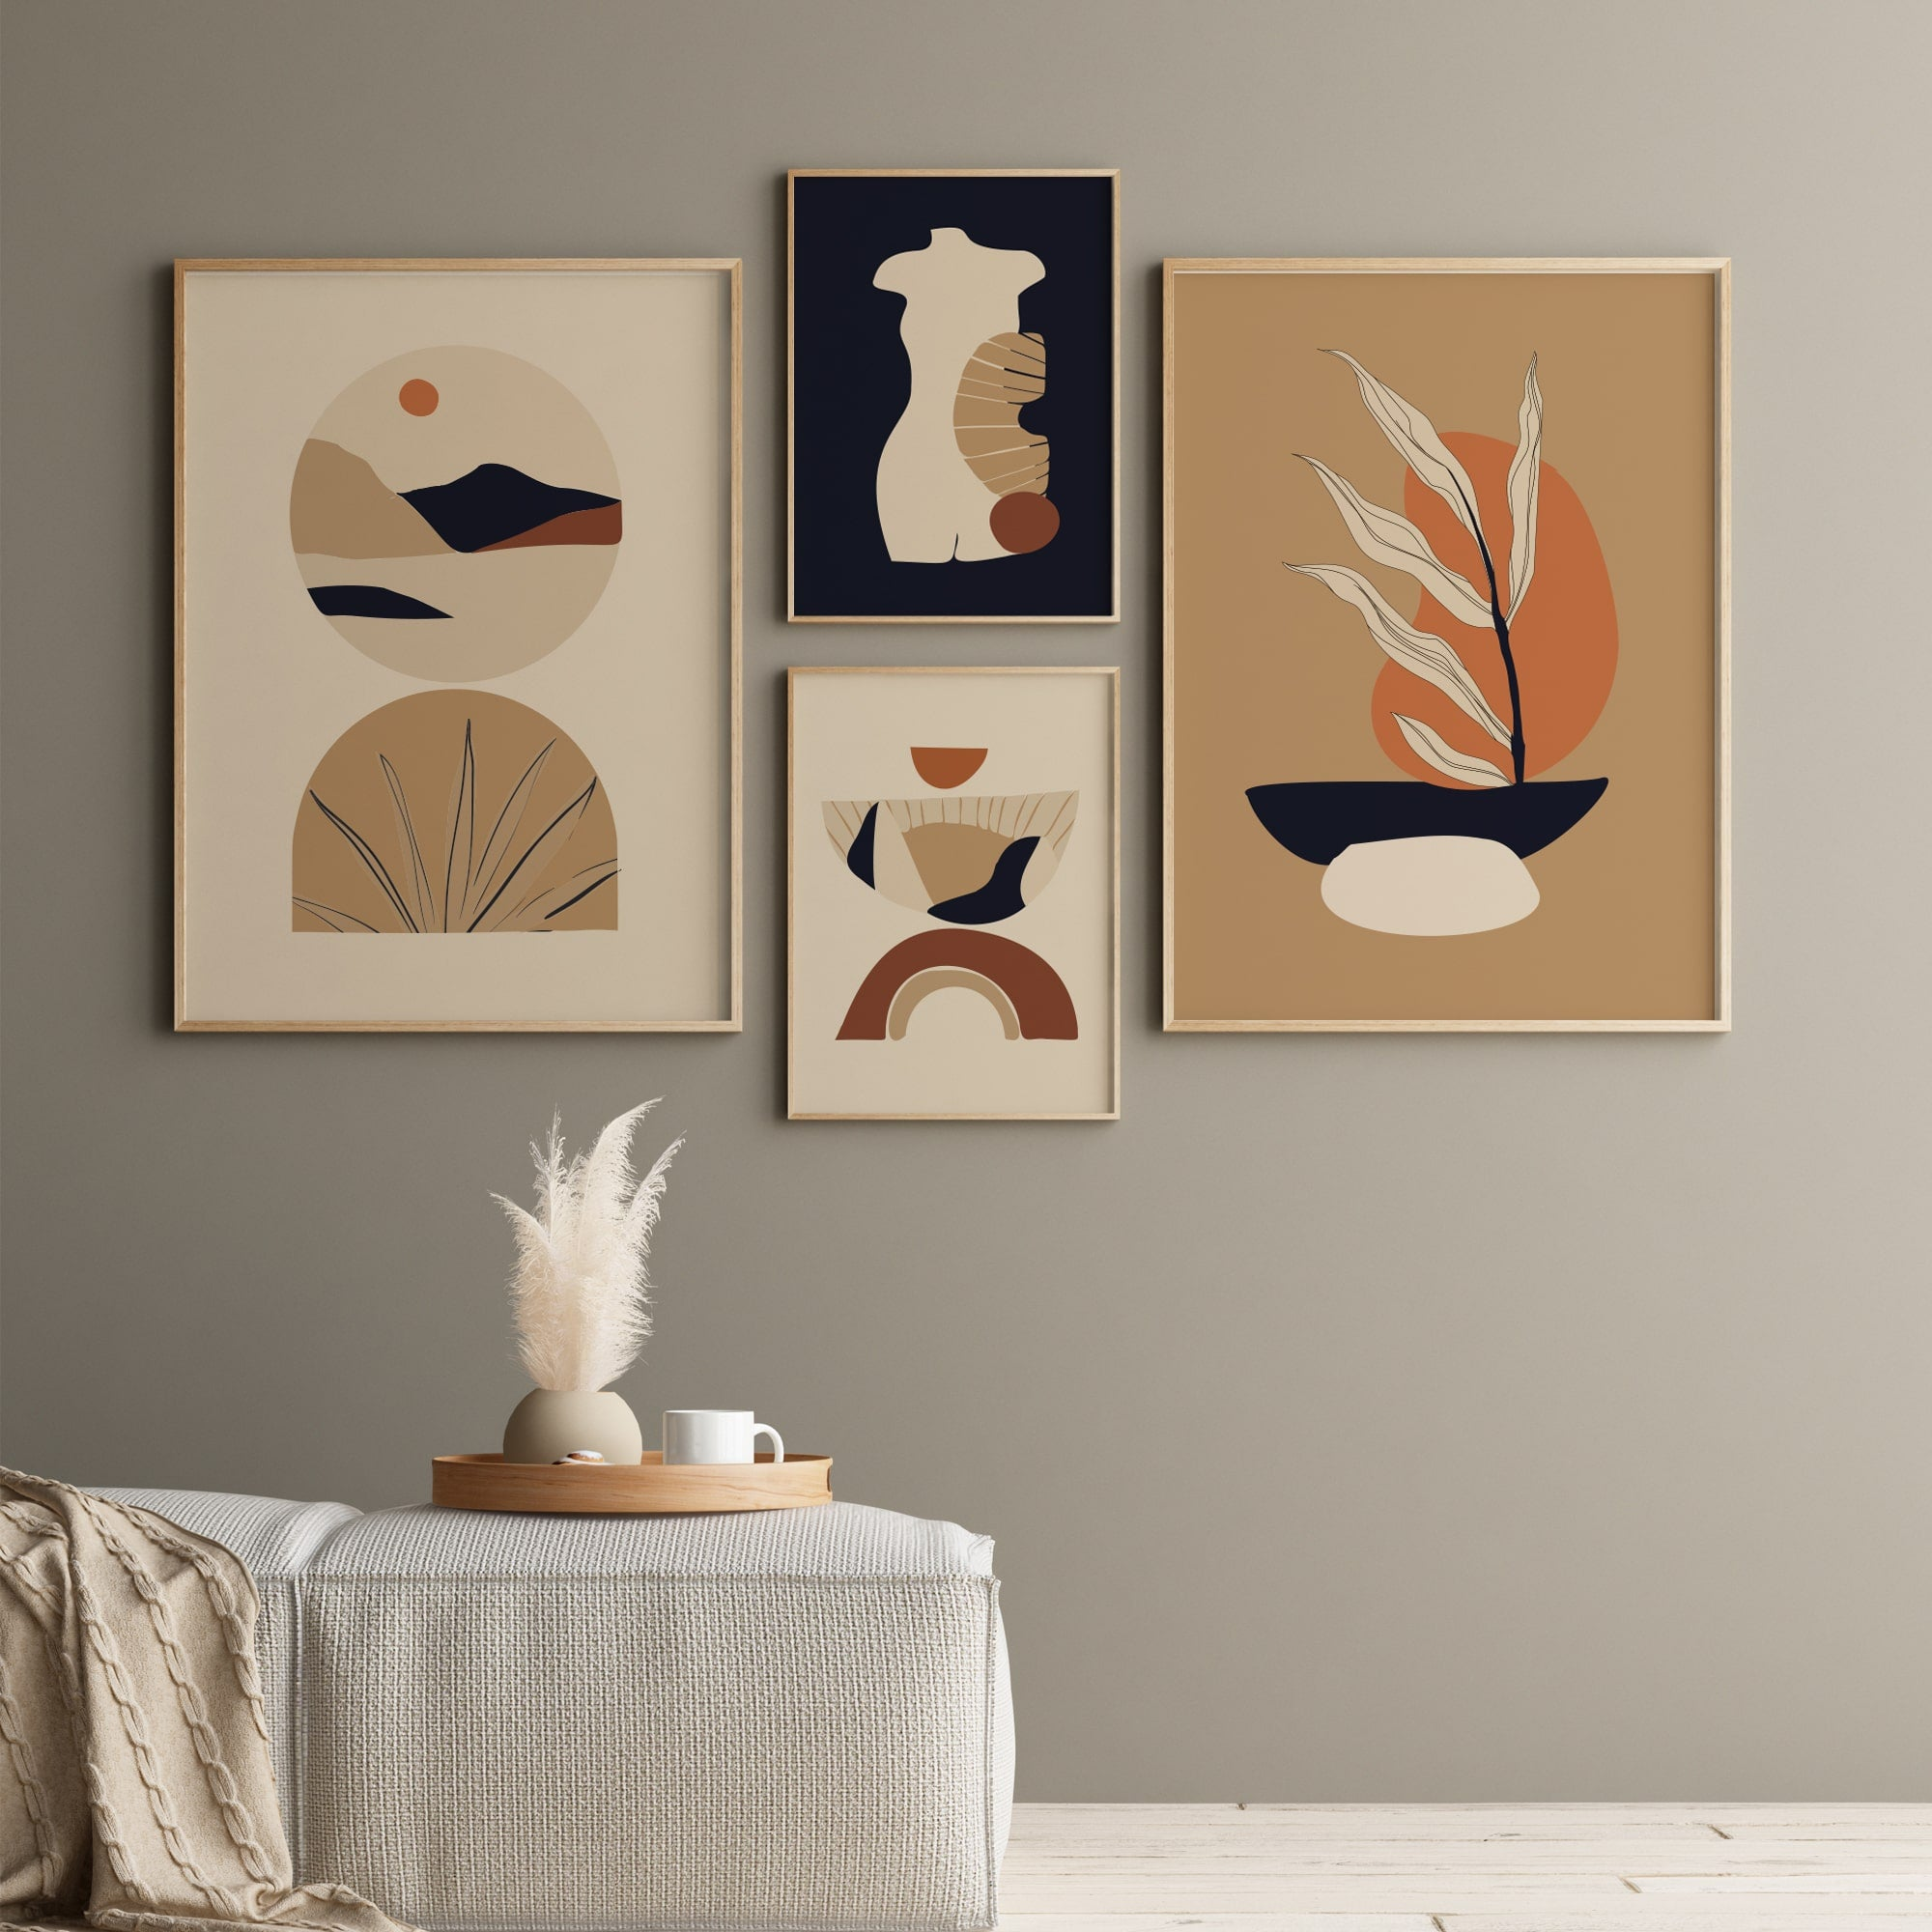 Bohemian gallery wall set, minimalist posters beige color